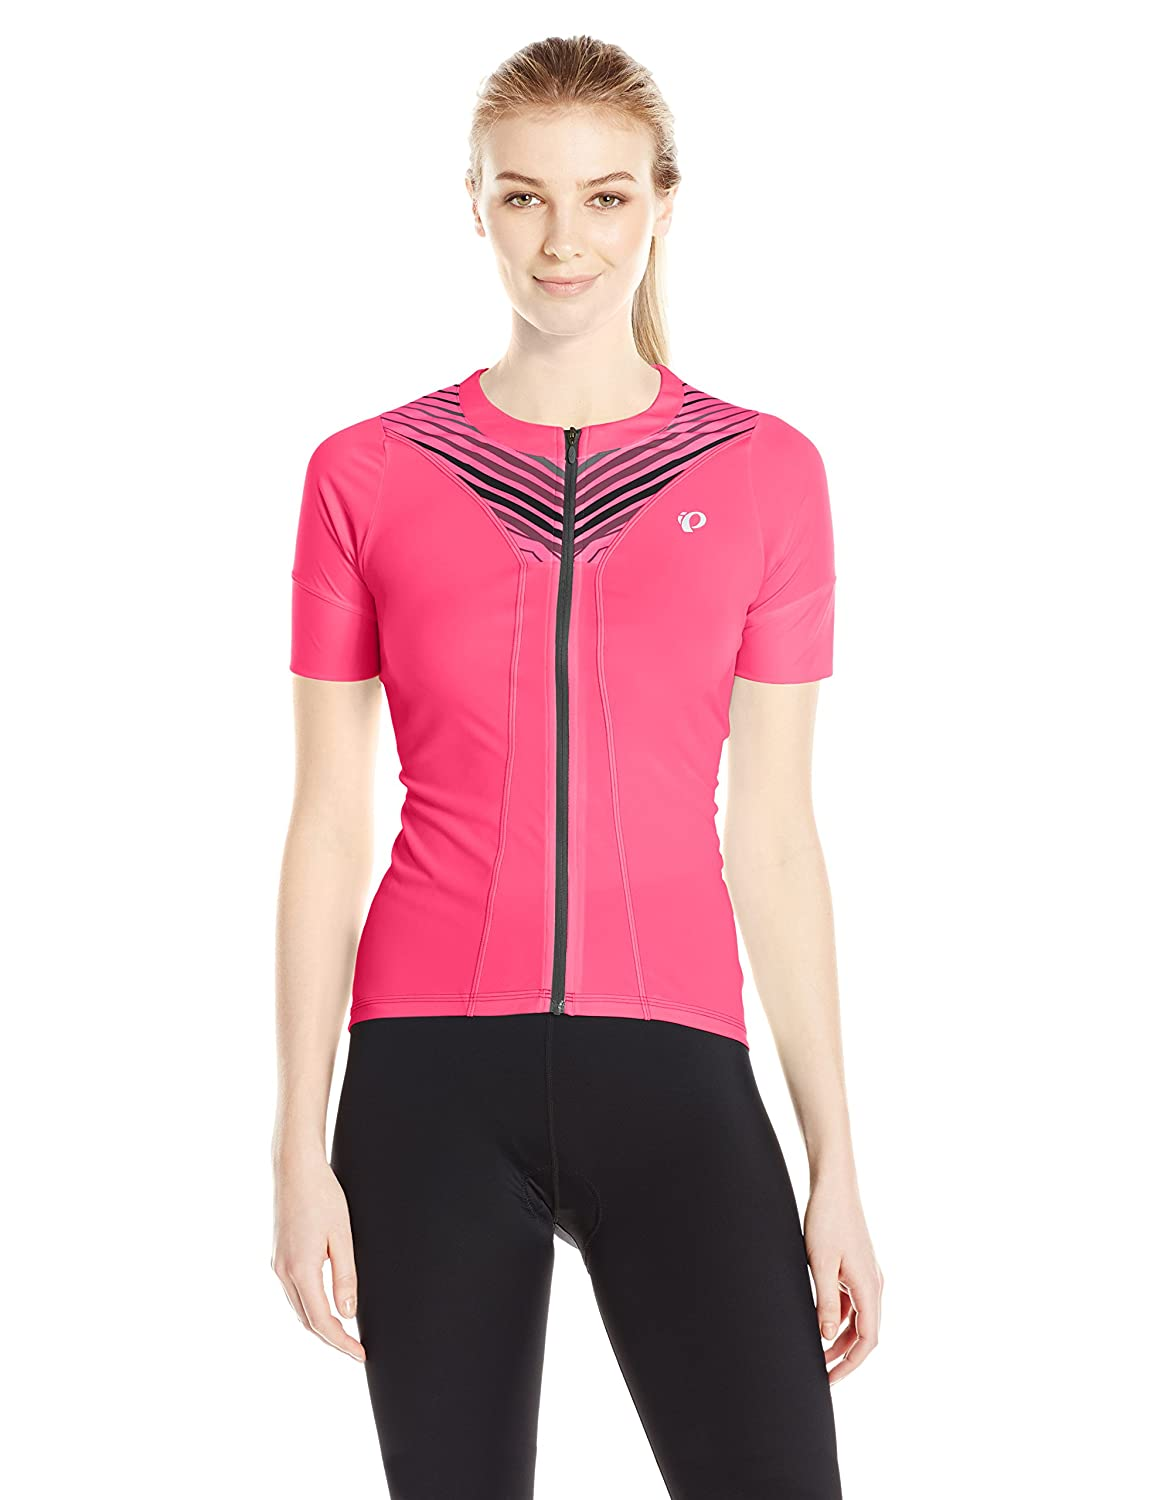 Screaming rose Whirl XL PEARL IZUMI W Select Pursuit SS Jrsy